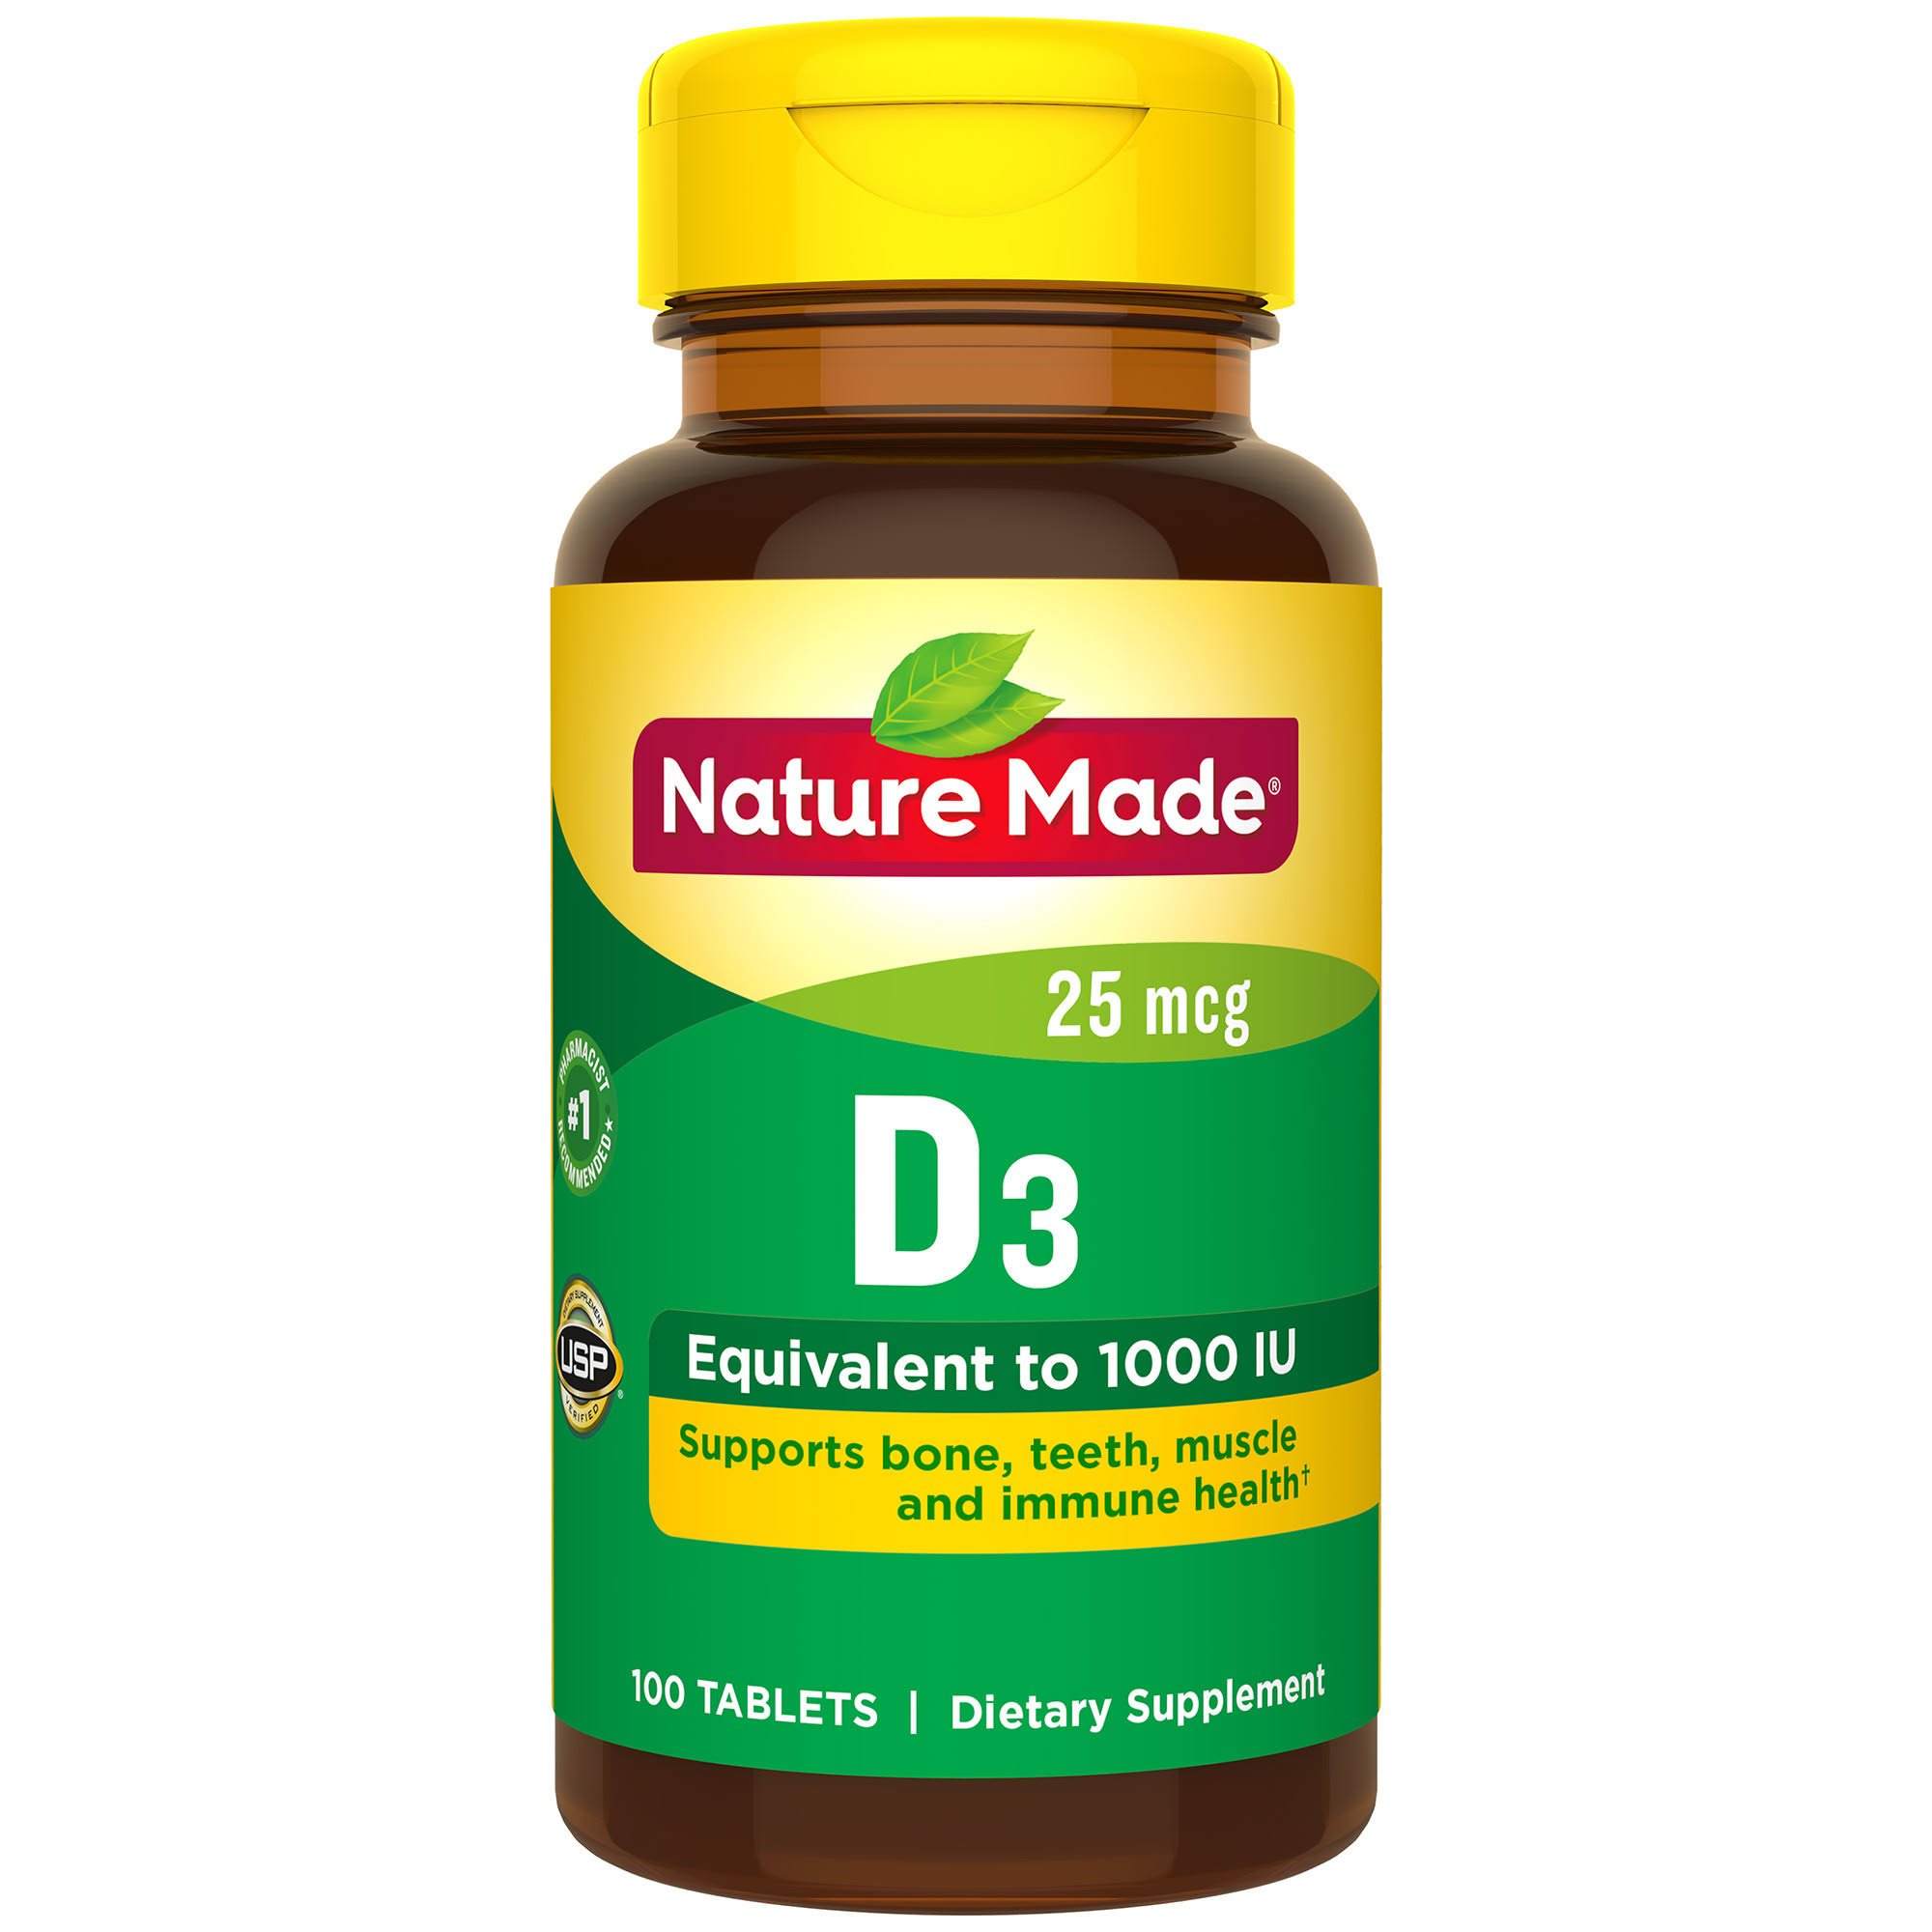 Nature Made D3 1000iu Vitamin D Supplement Tablets - 100ct